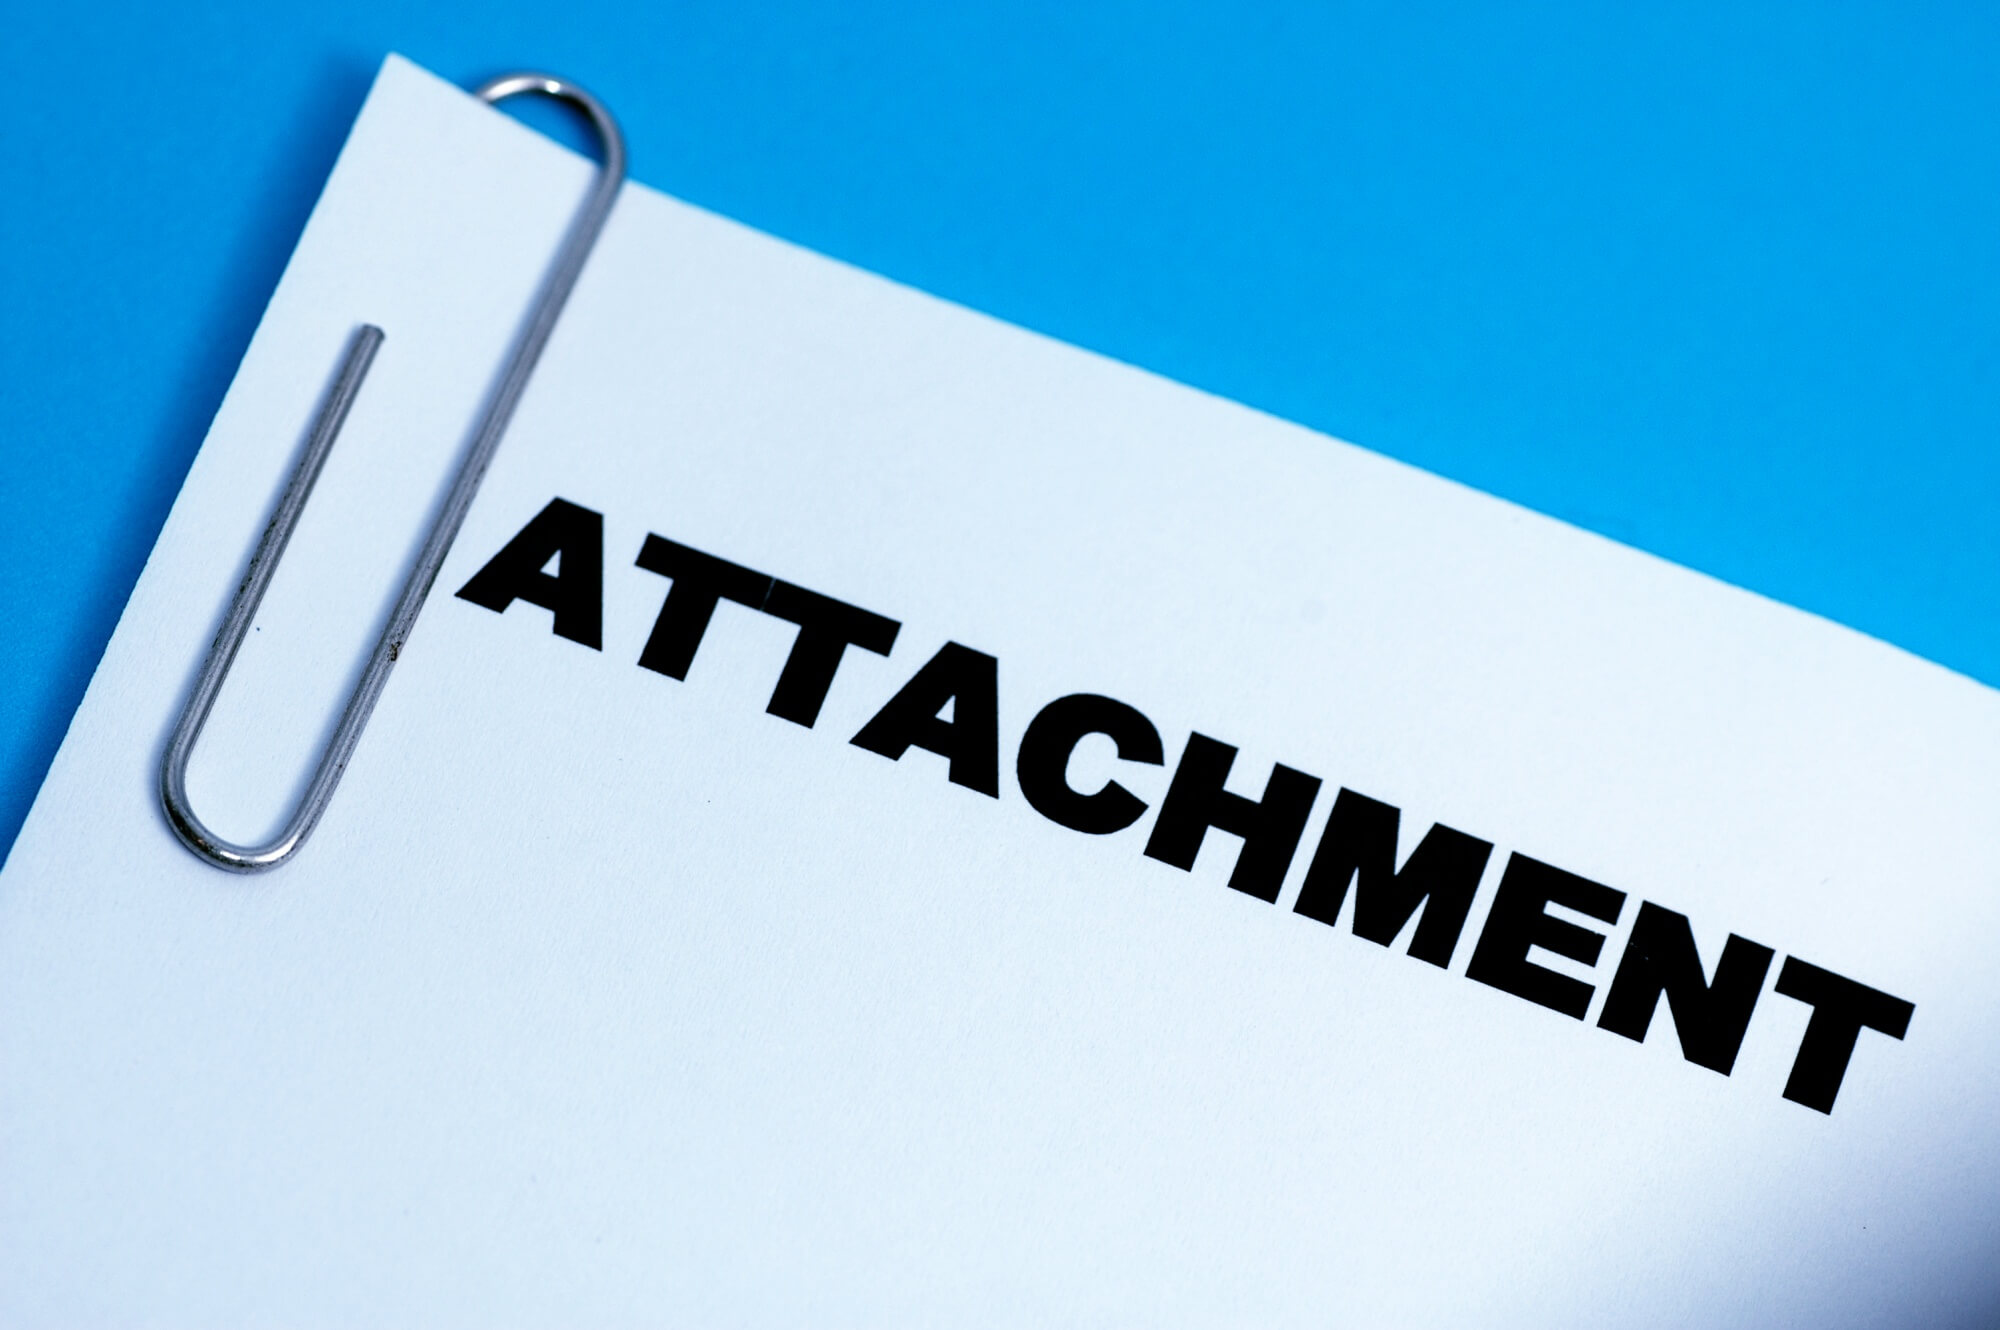 Please find attached: Is this the correct way to mention an attachment in emails? Learn the correct way to mention attachment.